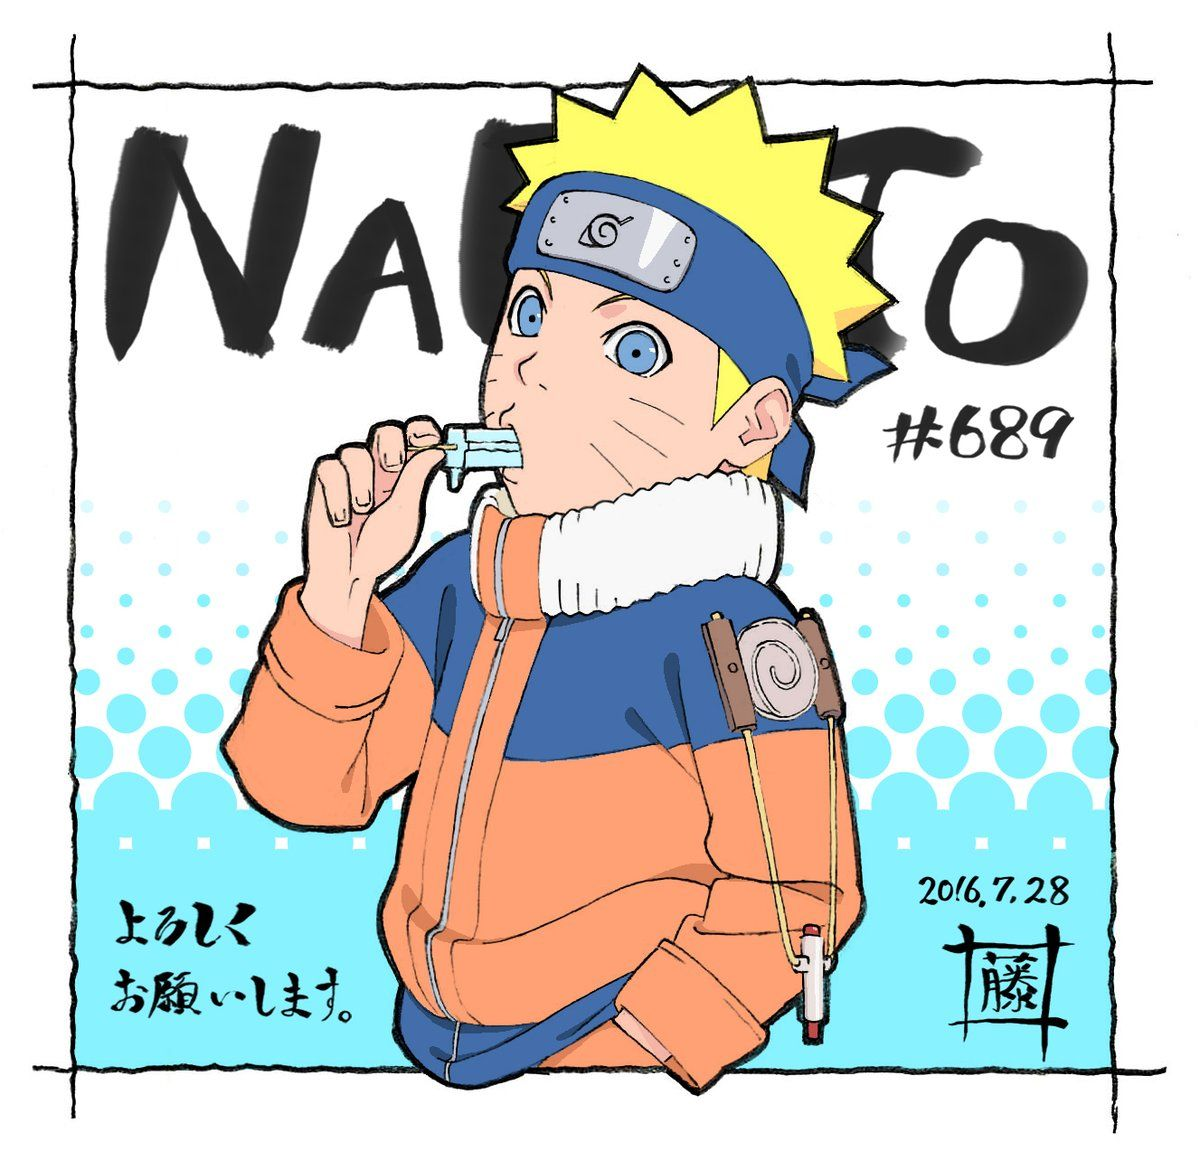 Login on Twitter Naruhina, Character, Fictional characters